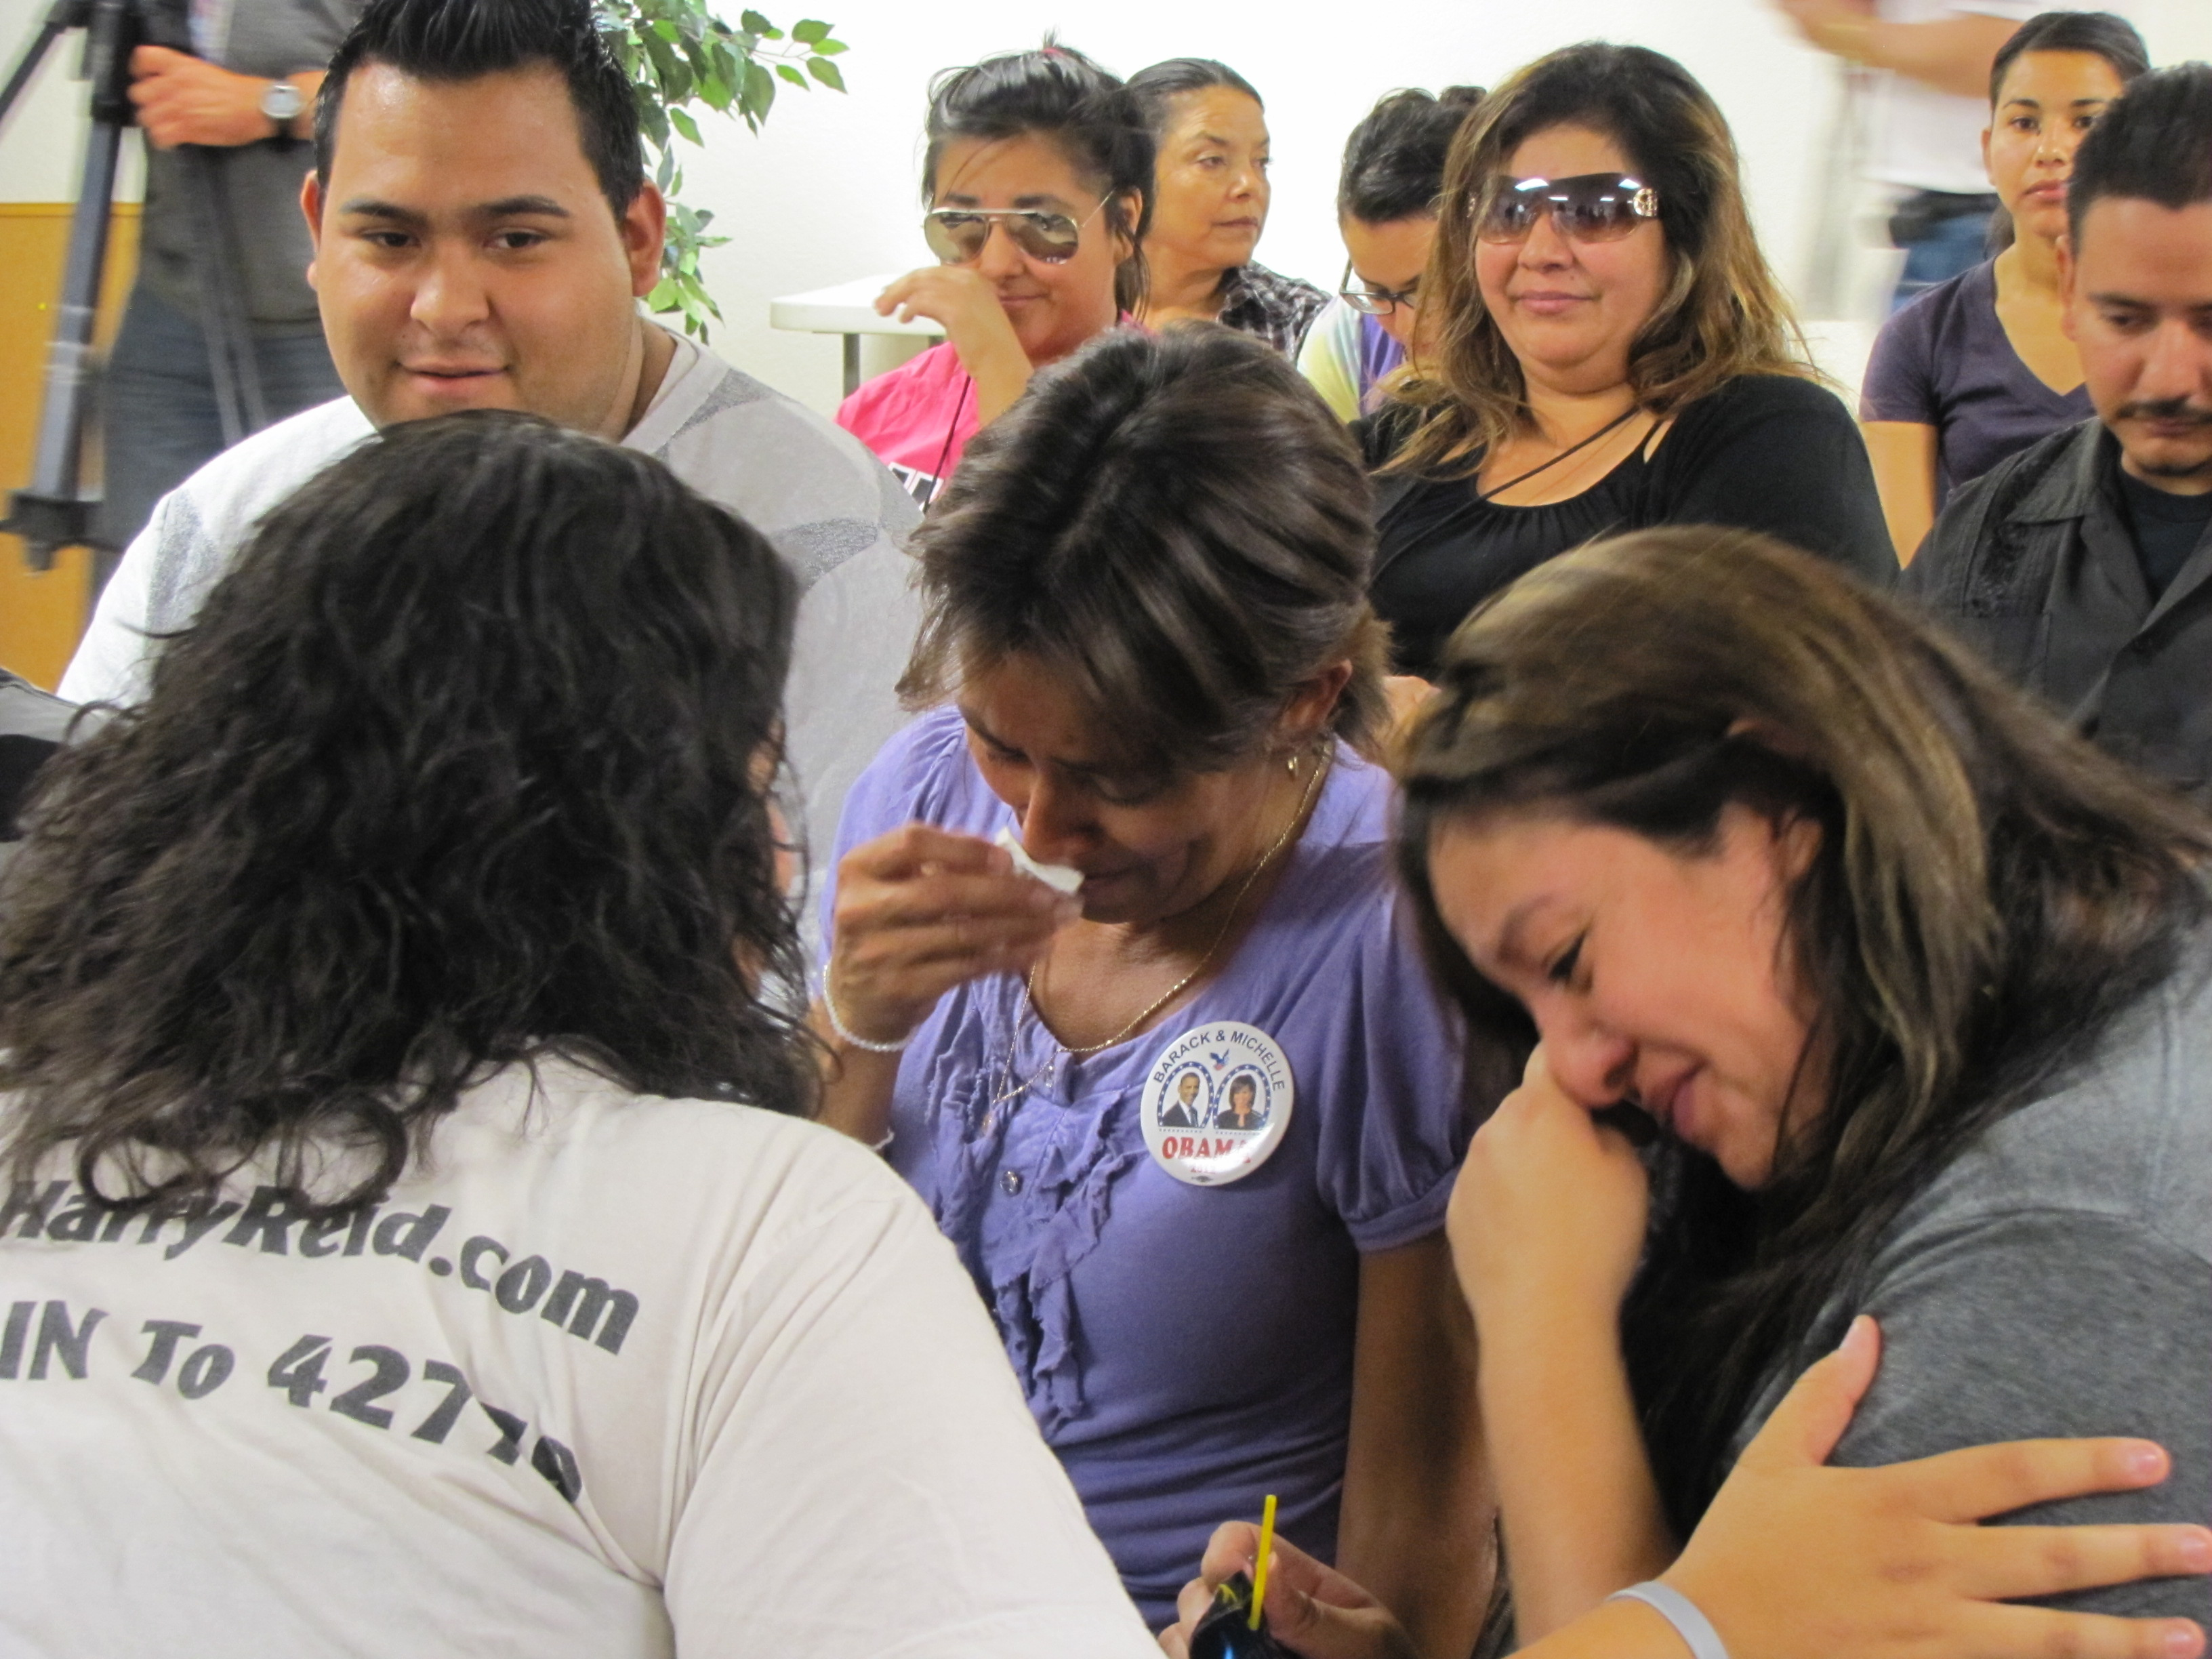 Activists and supporters of the DREAM Act react to President Obama's announcement on Friday in Las Vegas.